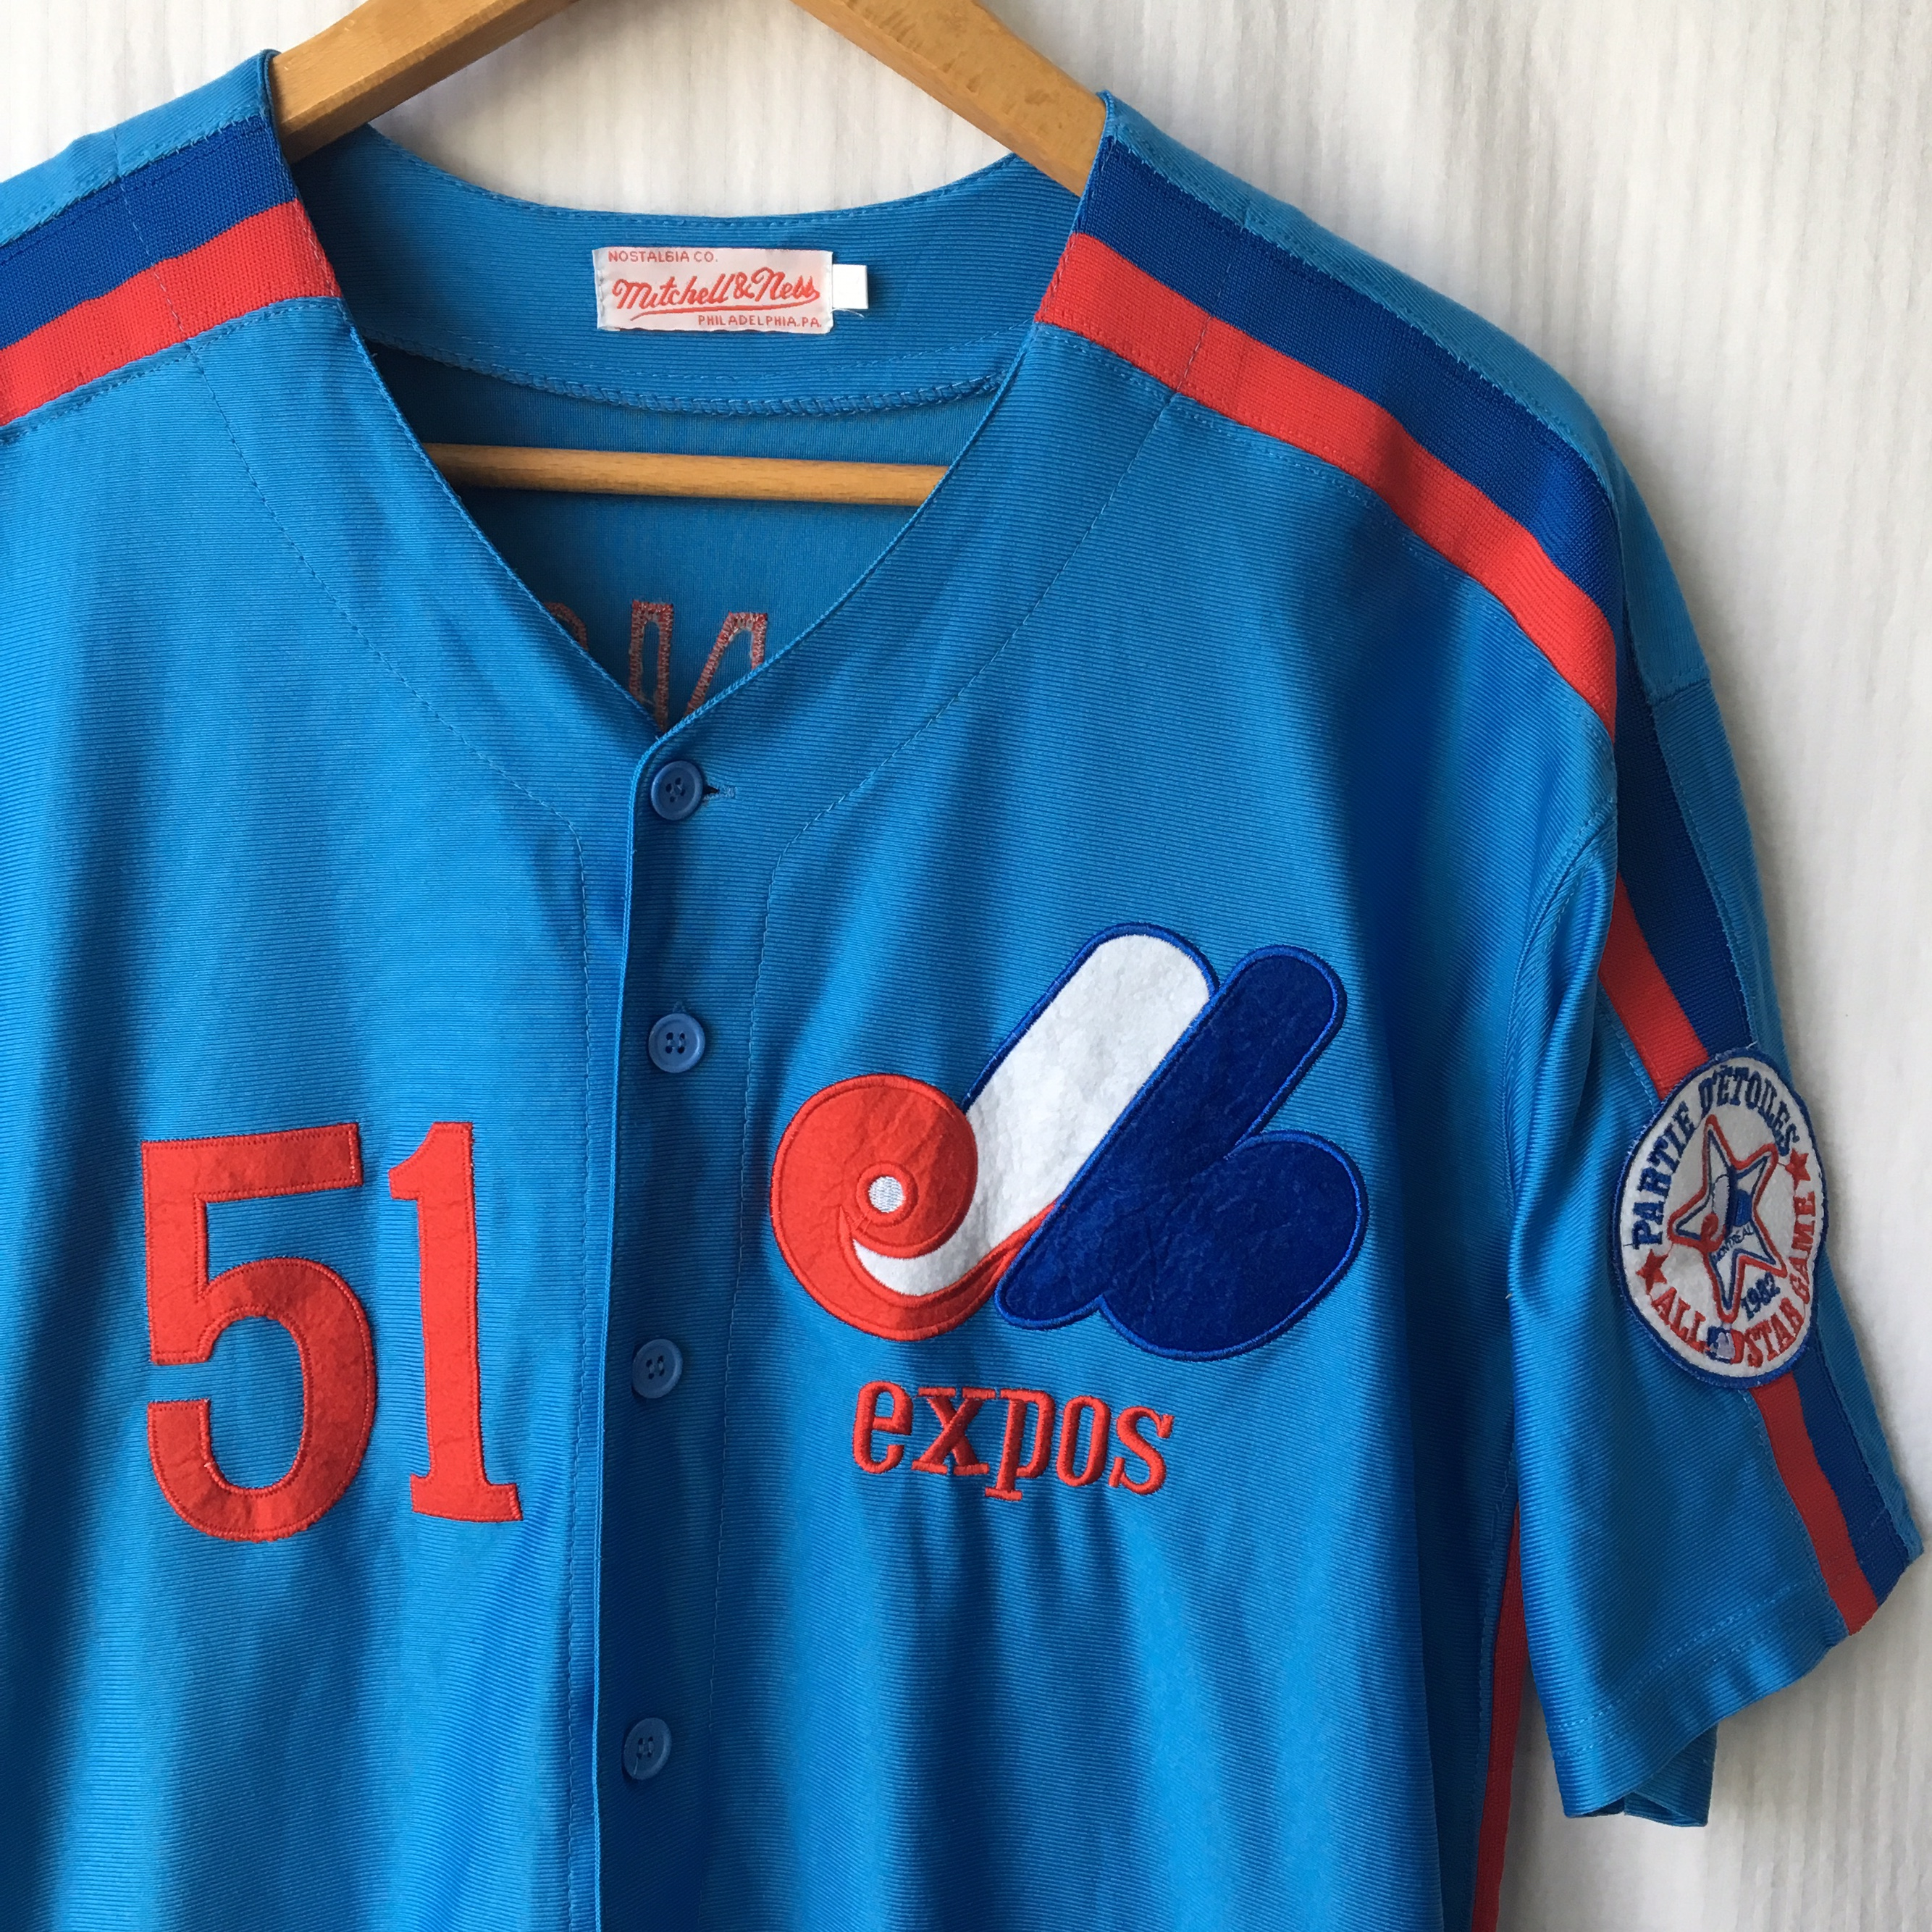 separation shoes 1bdd0 55584 Mitchell & Ness Randy Johnson Montreal Expos Jersey ...